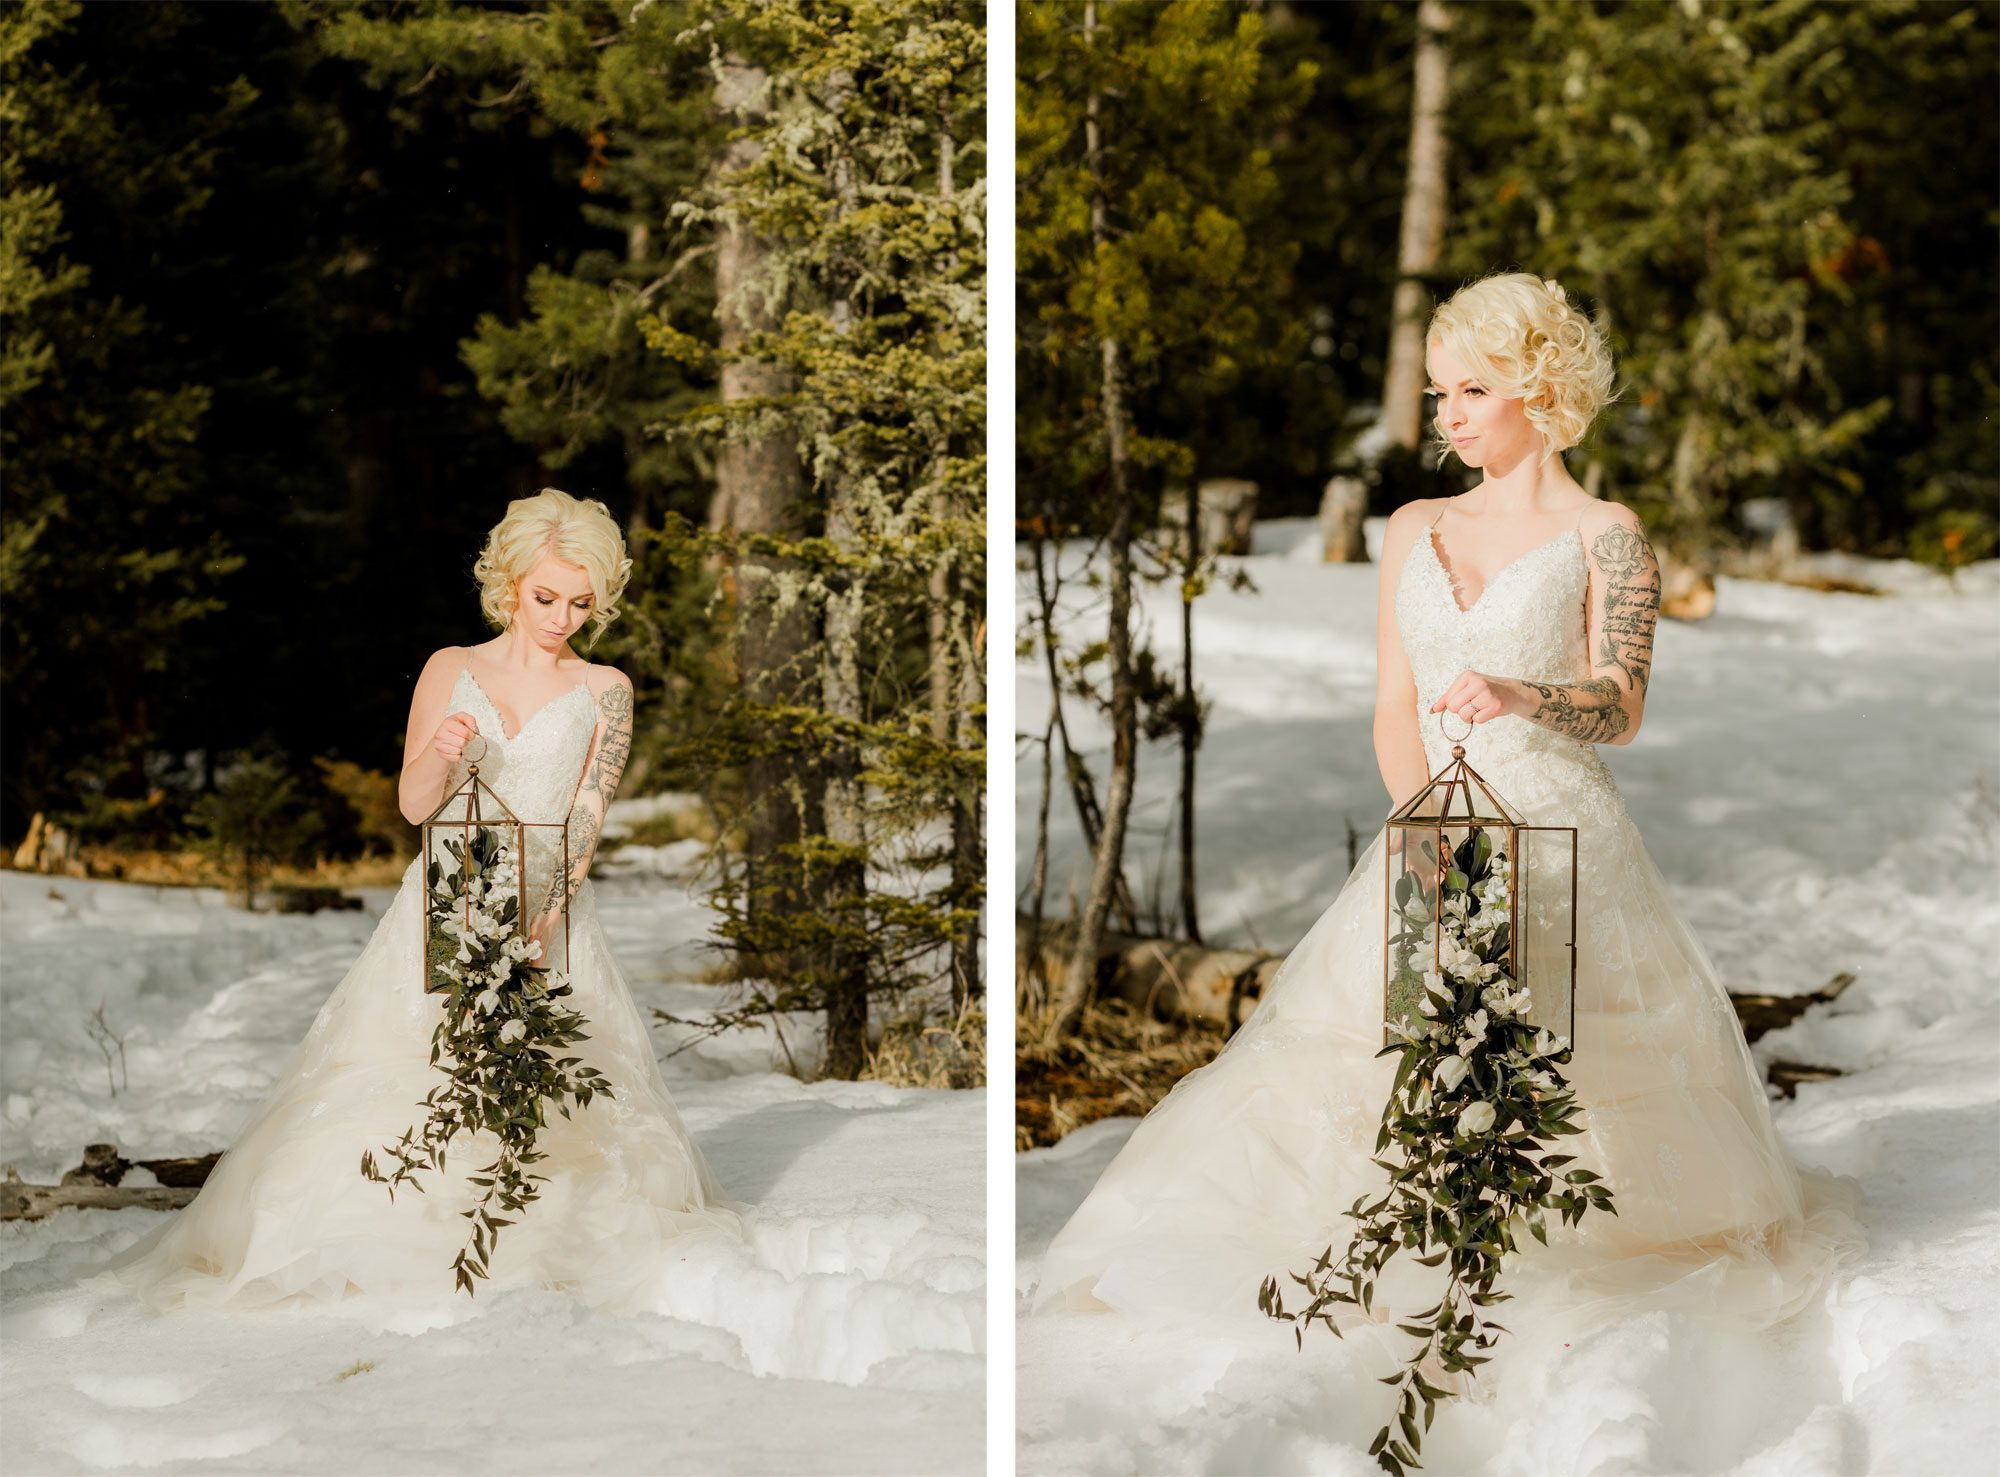 A winter wedding shoot in the snow in Montana